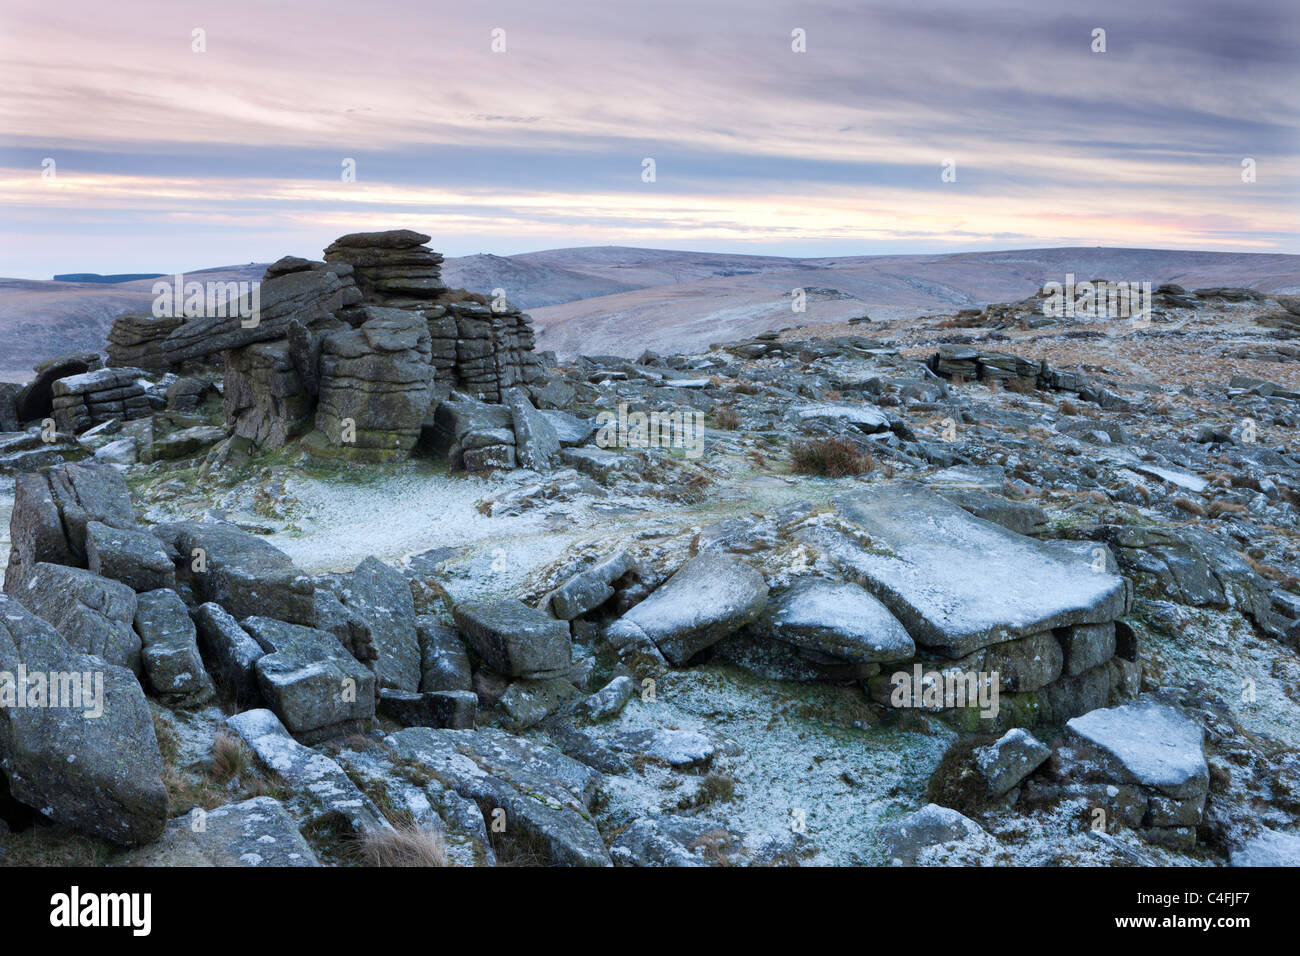 Frost covered Higher Tor in Dartmoor National Park, Devon, England. Winter (December) 2010. Stock Photo